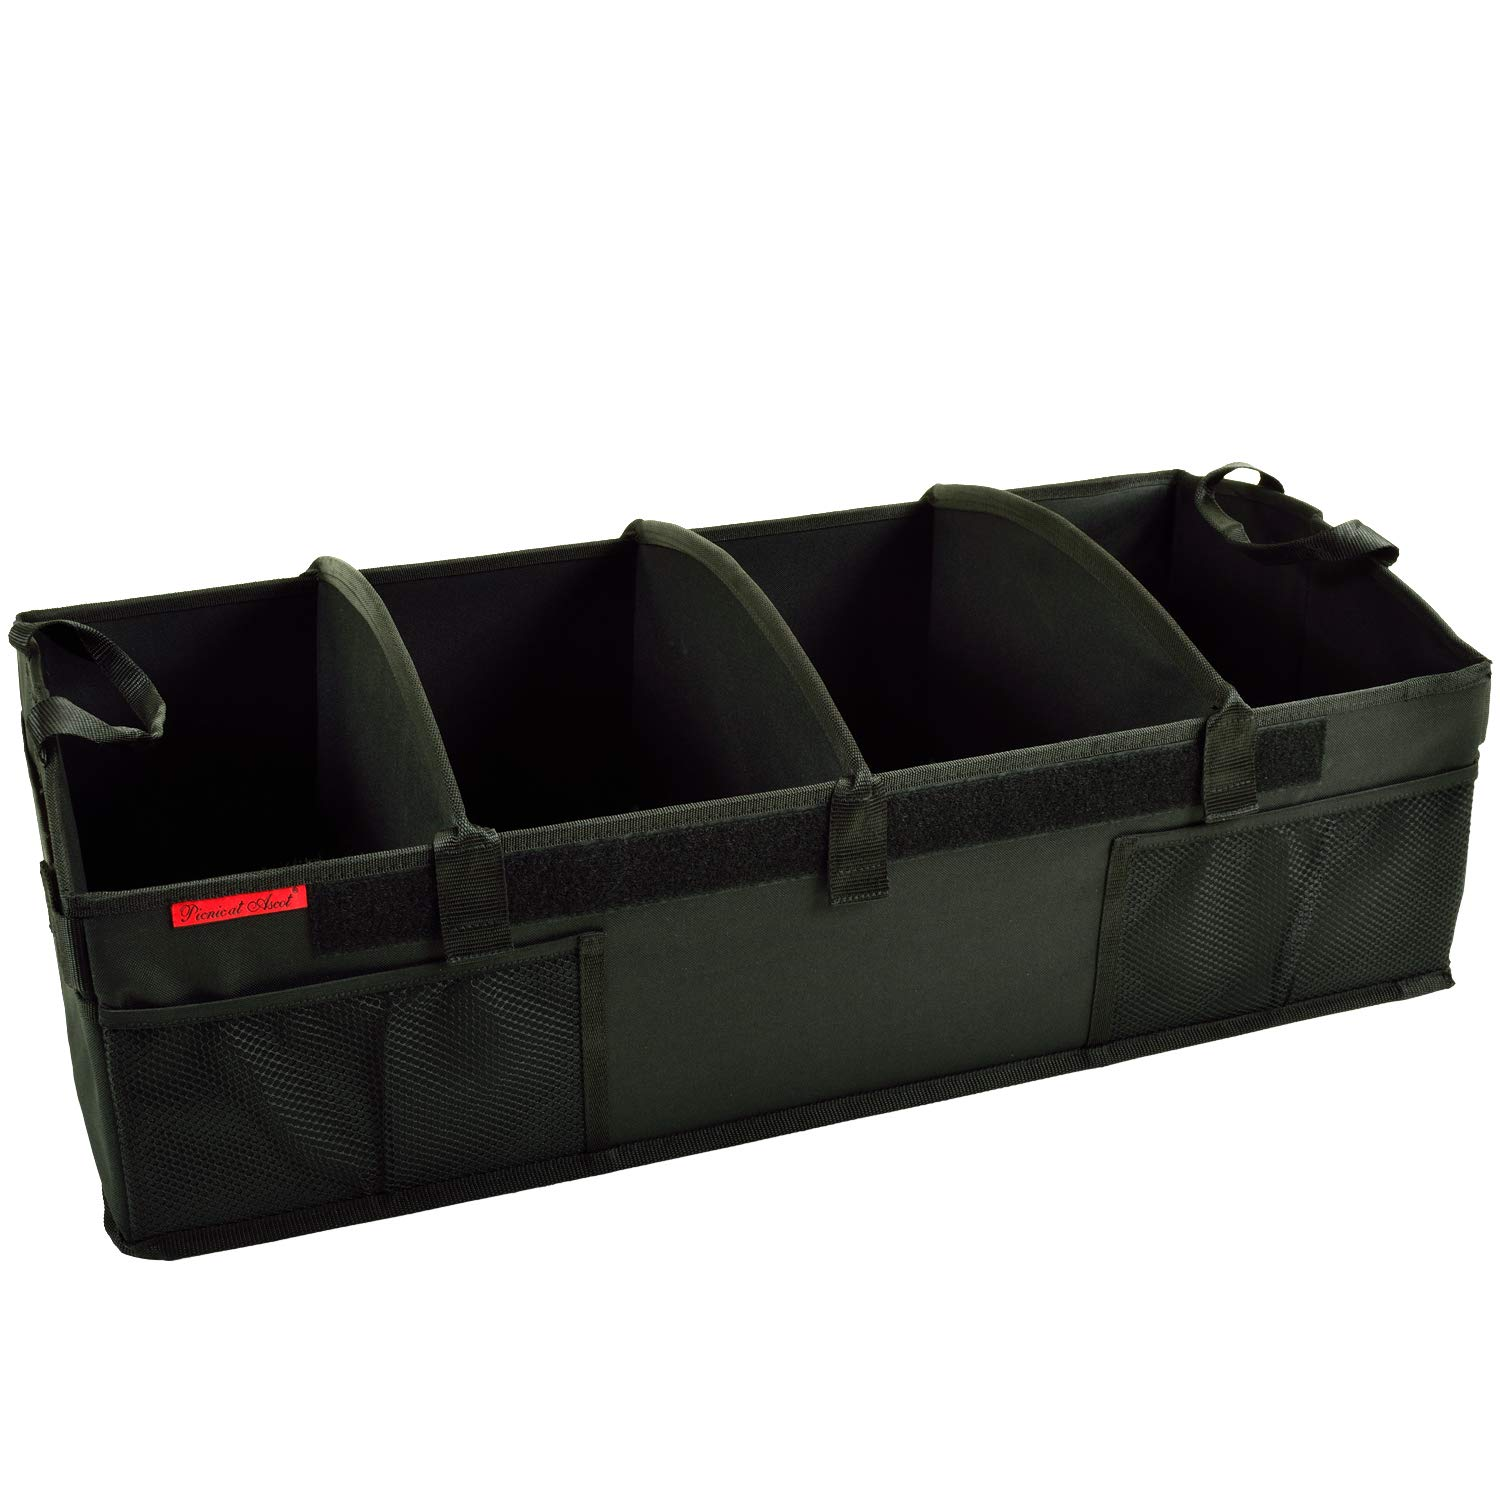 Picnic at Ascot Heavy Duty Rigid Base Trunk Organizer -70 LB Capacity - Adjustable Dividers - 30'' wide x 15'' deep - Designed & Quality Approved in the USA by Picnic at Ascot